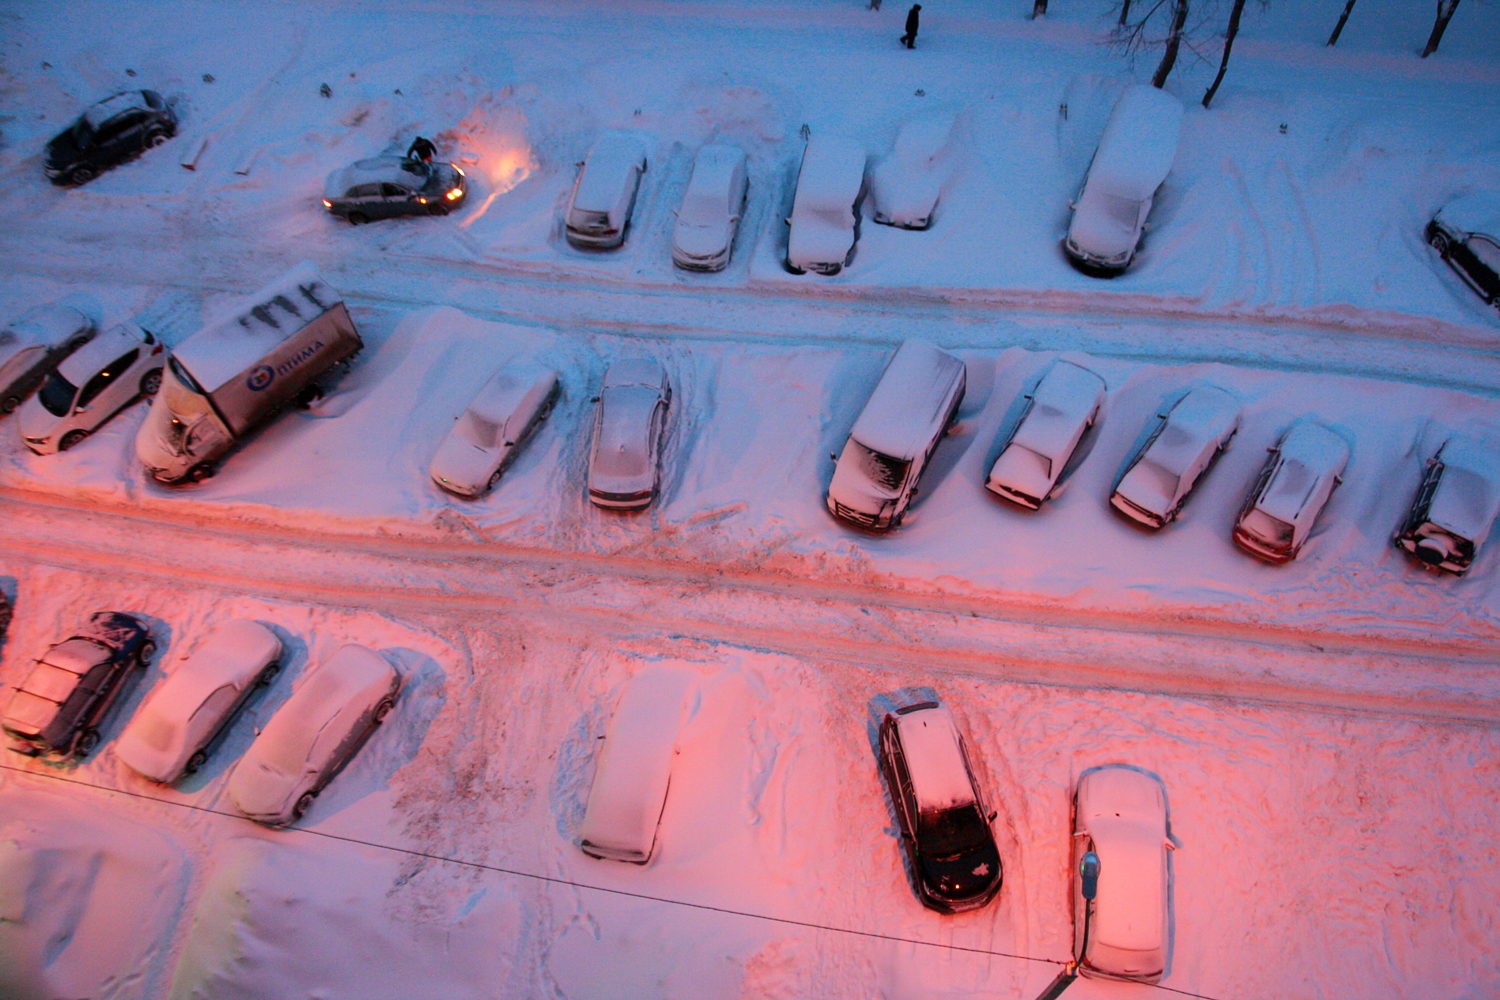 Cars parked in snow photo